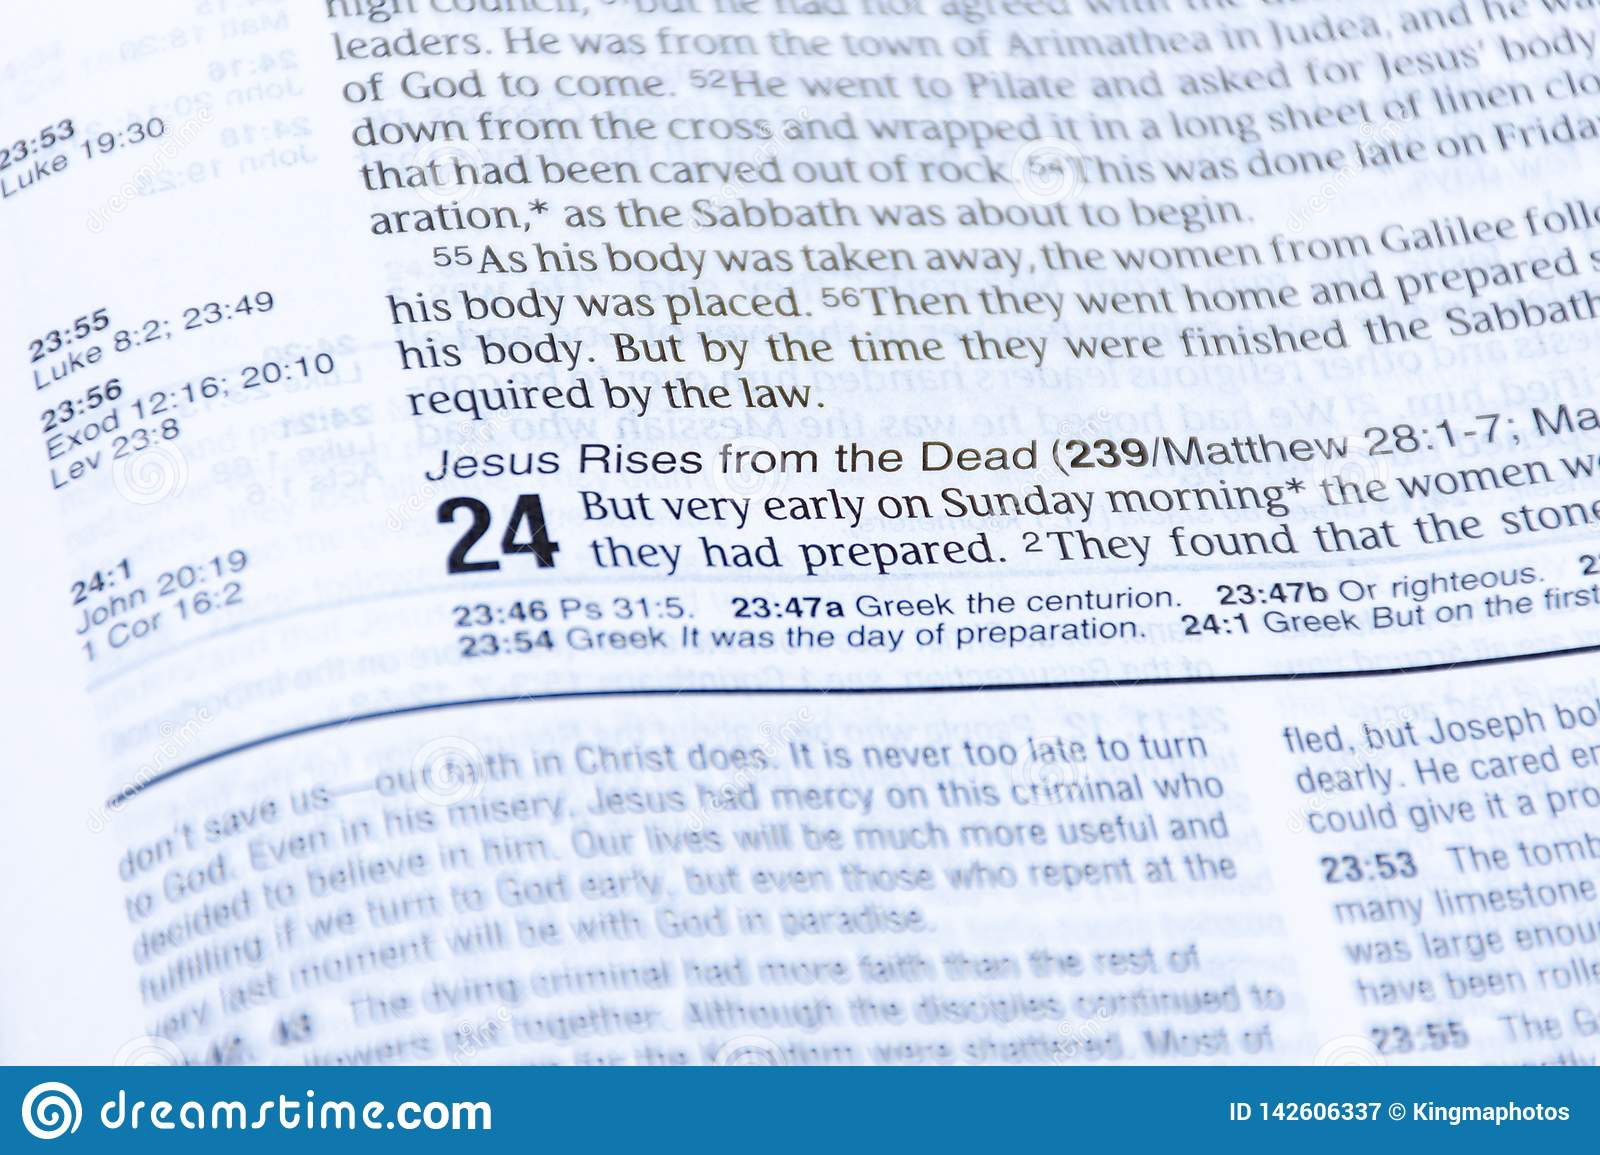 Easter Bible reading of the good news of the resurrection of Jesus Christ from the dead. Luke chapter 24